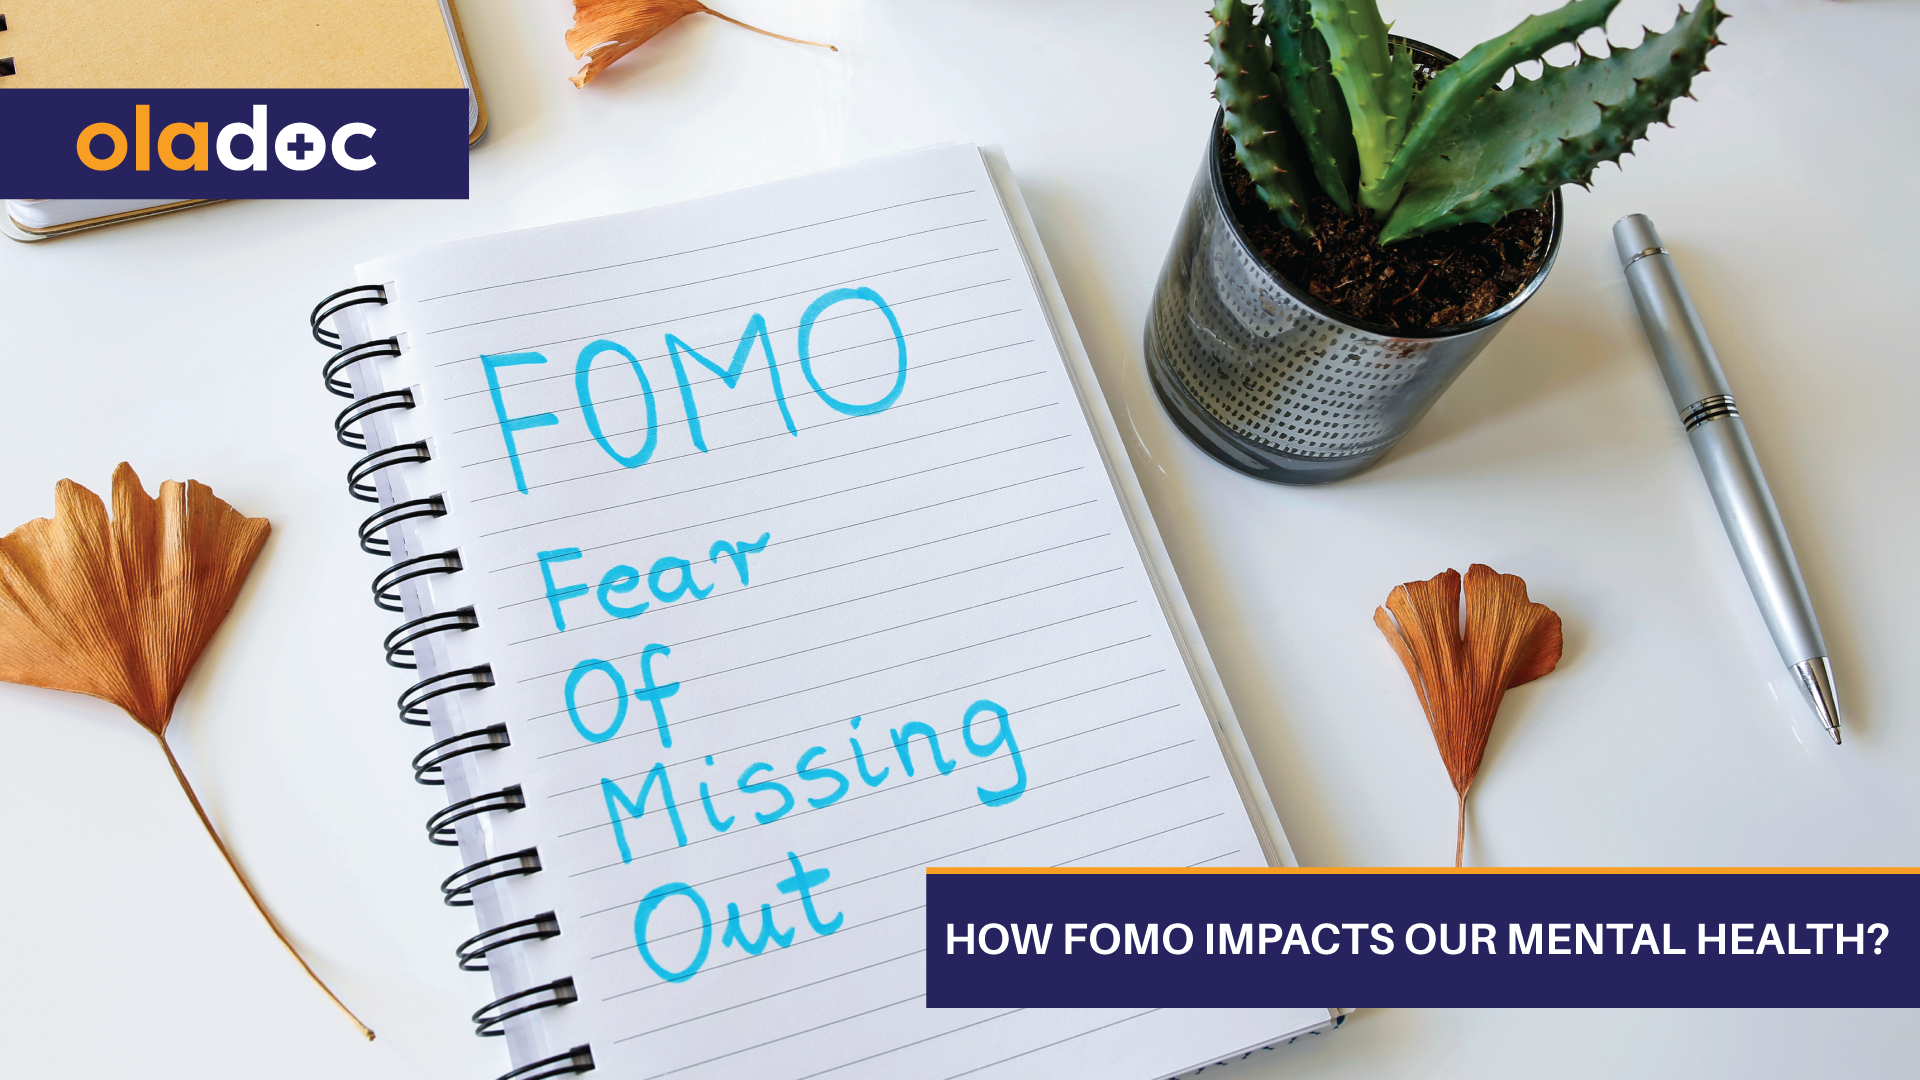 How FOMO Impacts Our Mental Health?